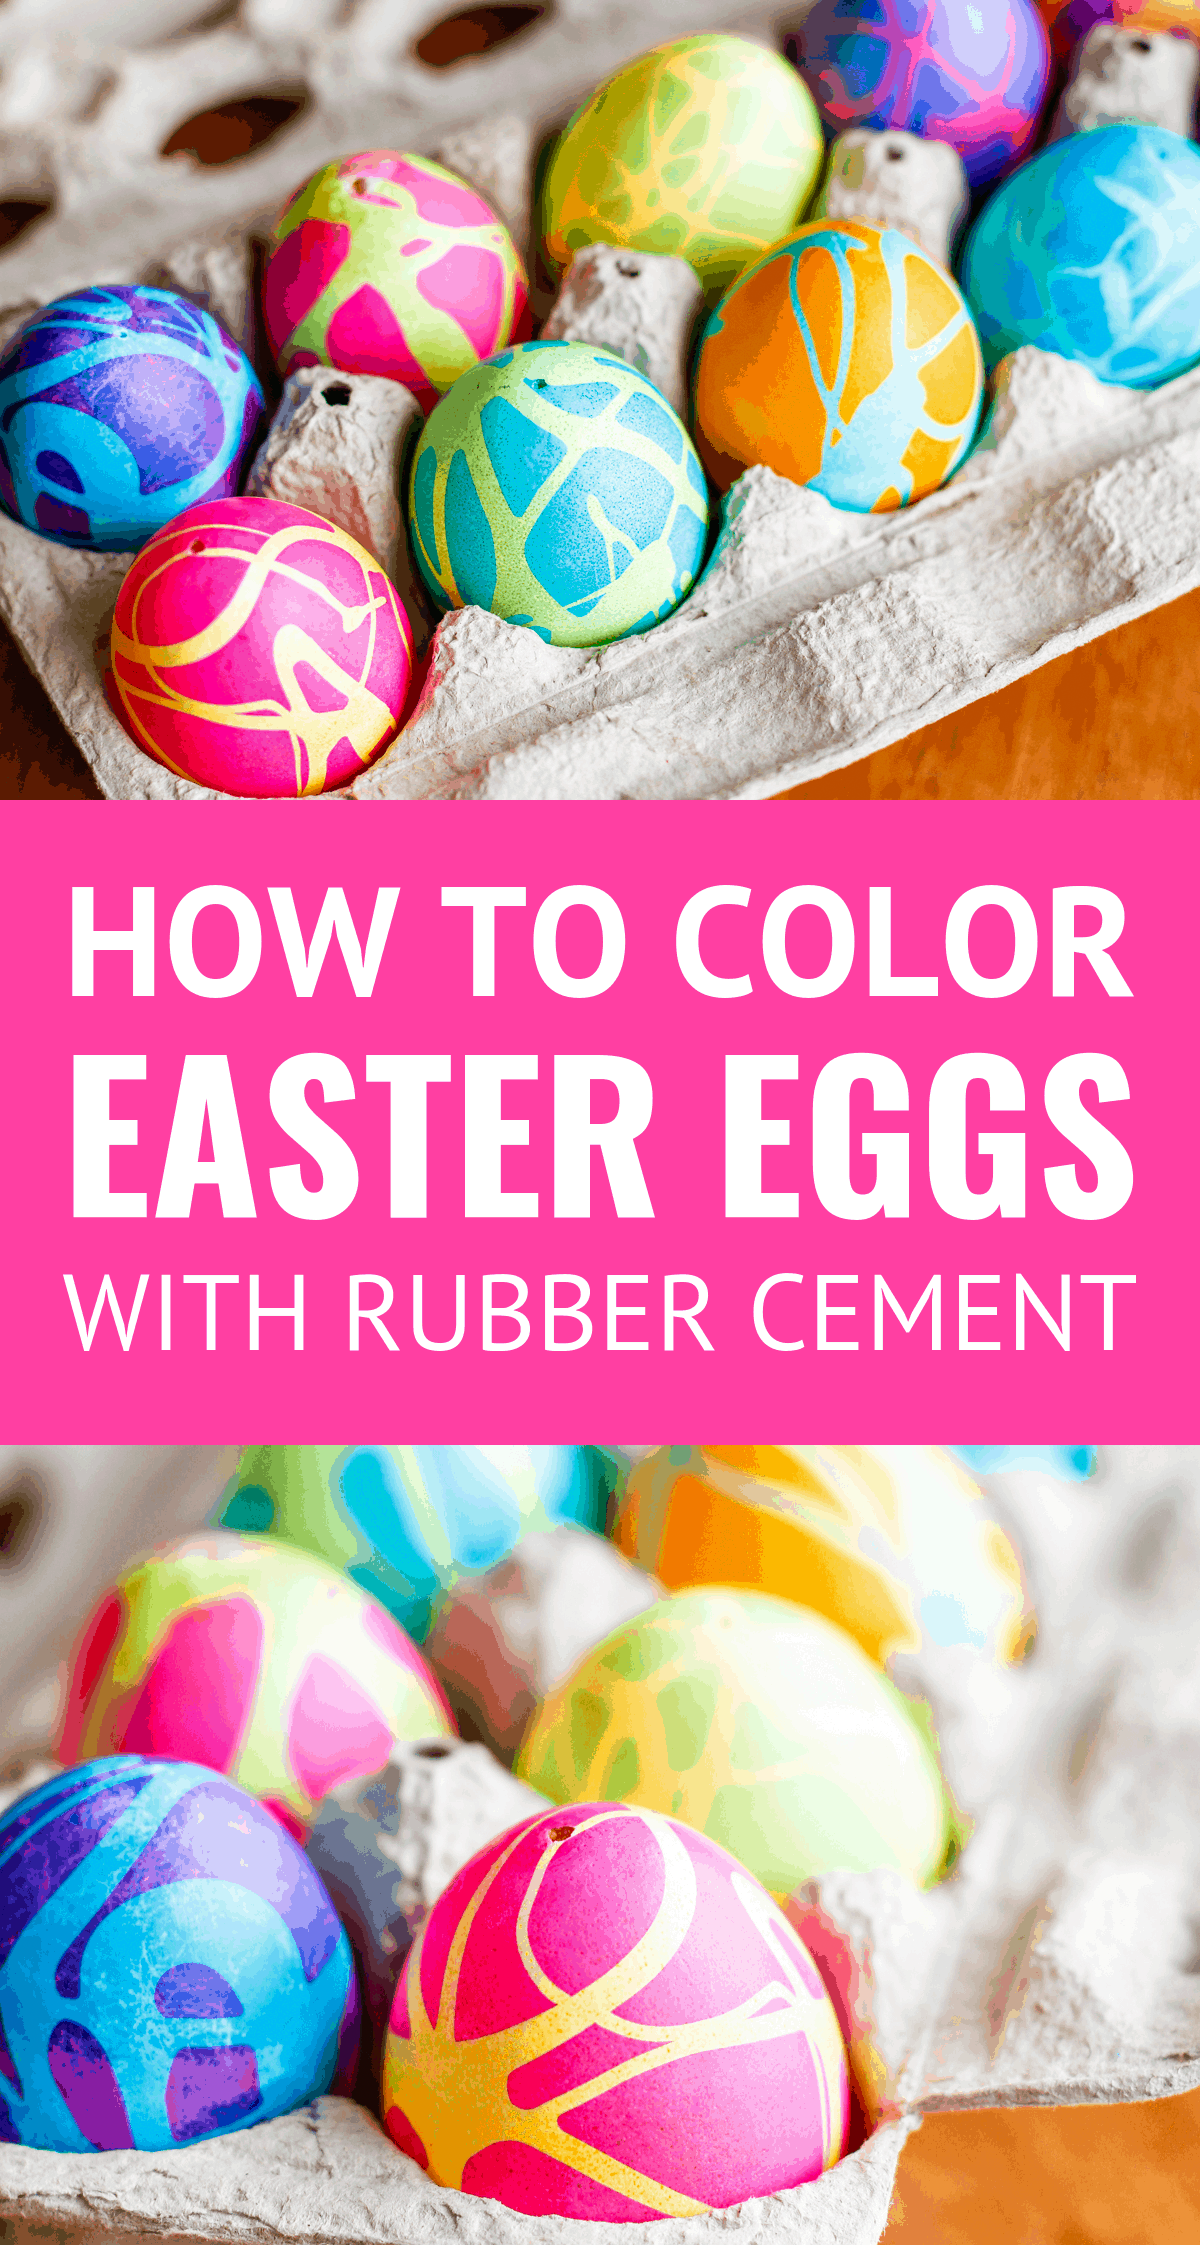 Coloring Easter Eggs w/ Rubber Cement -- dyeing Easter eggs with gel food coloring and this rubber cement technique produces some spectacularly high contrast, gorgeous abstract designs! Use it on blown-out eggs to preserve these cool Easter Eggs for years to come... | how do you dye easter eggs | how to dye eggs with food coloring | easter eggs coloring ideas | find the tutorial on unsophisticook.com